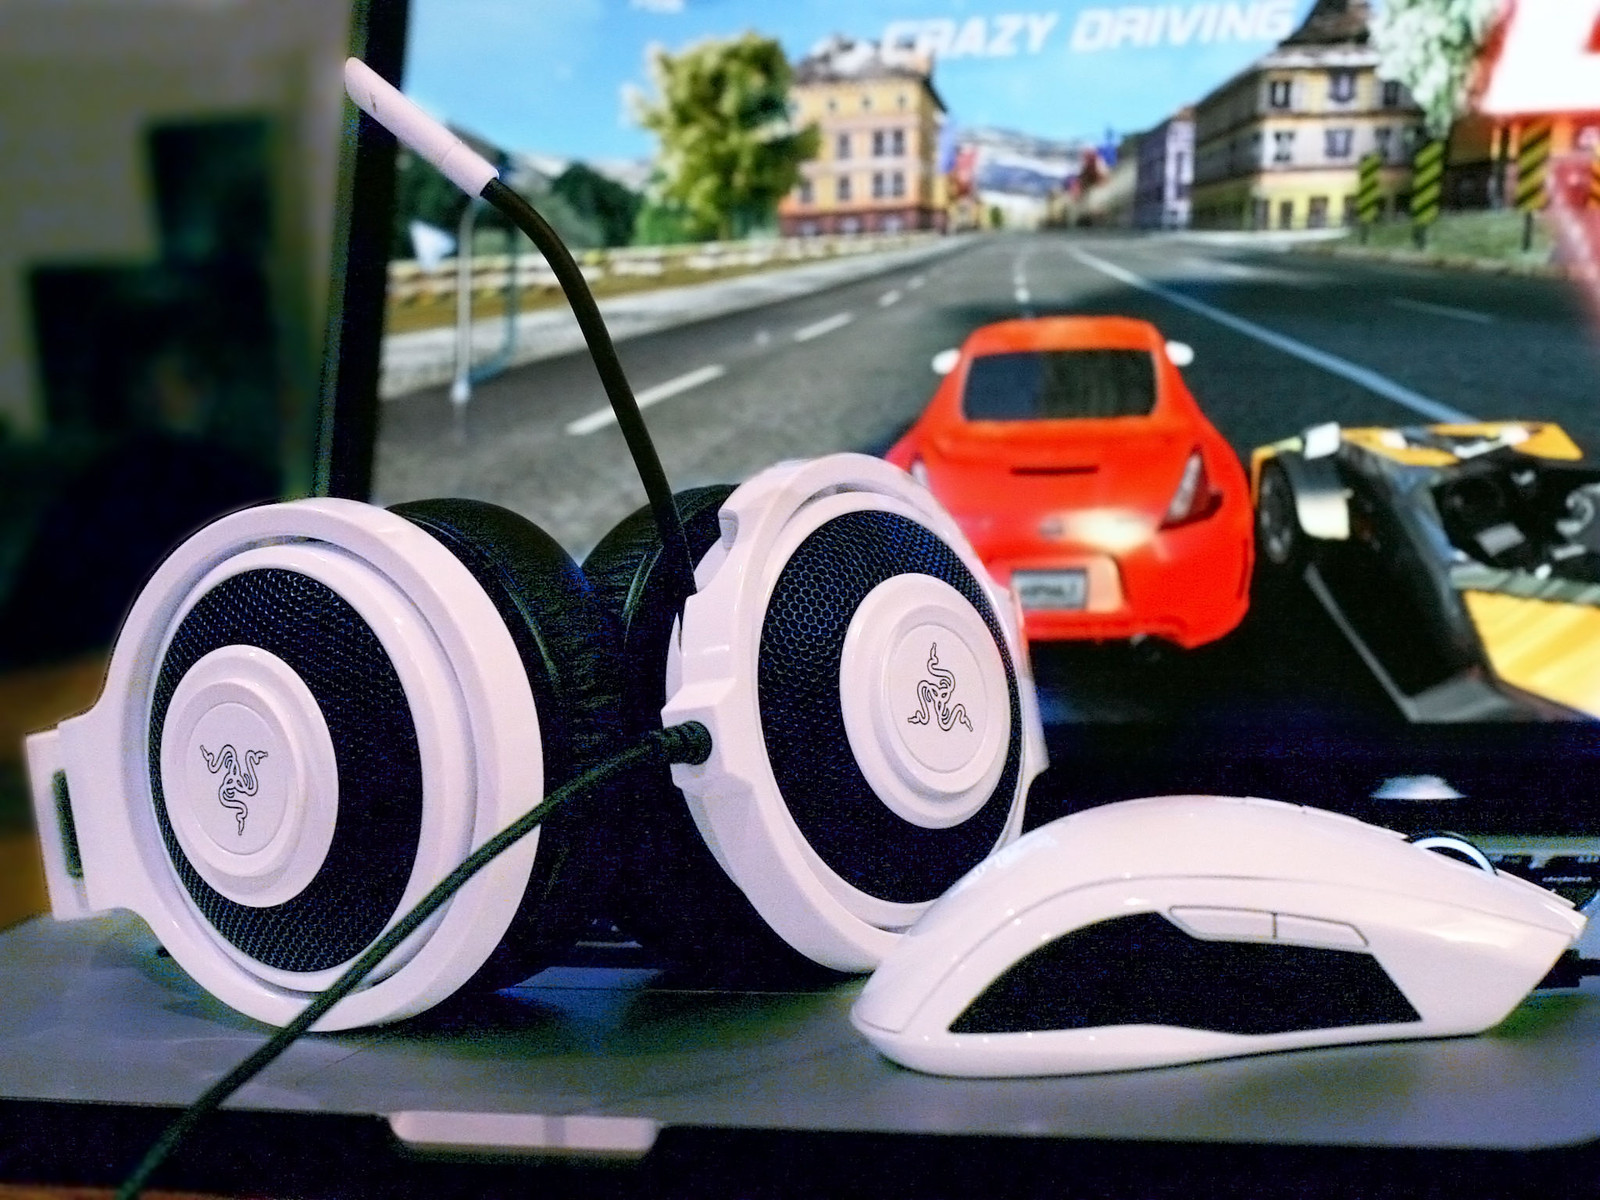 Improve your Mac gaming with Razer's Kraken Pro headset and Taipan mouse